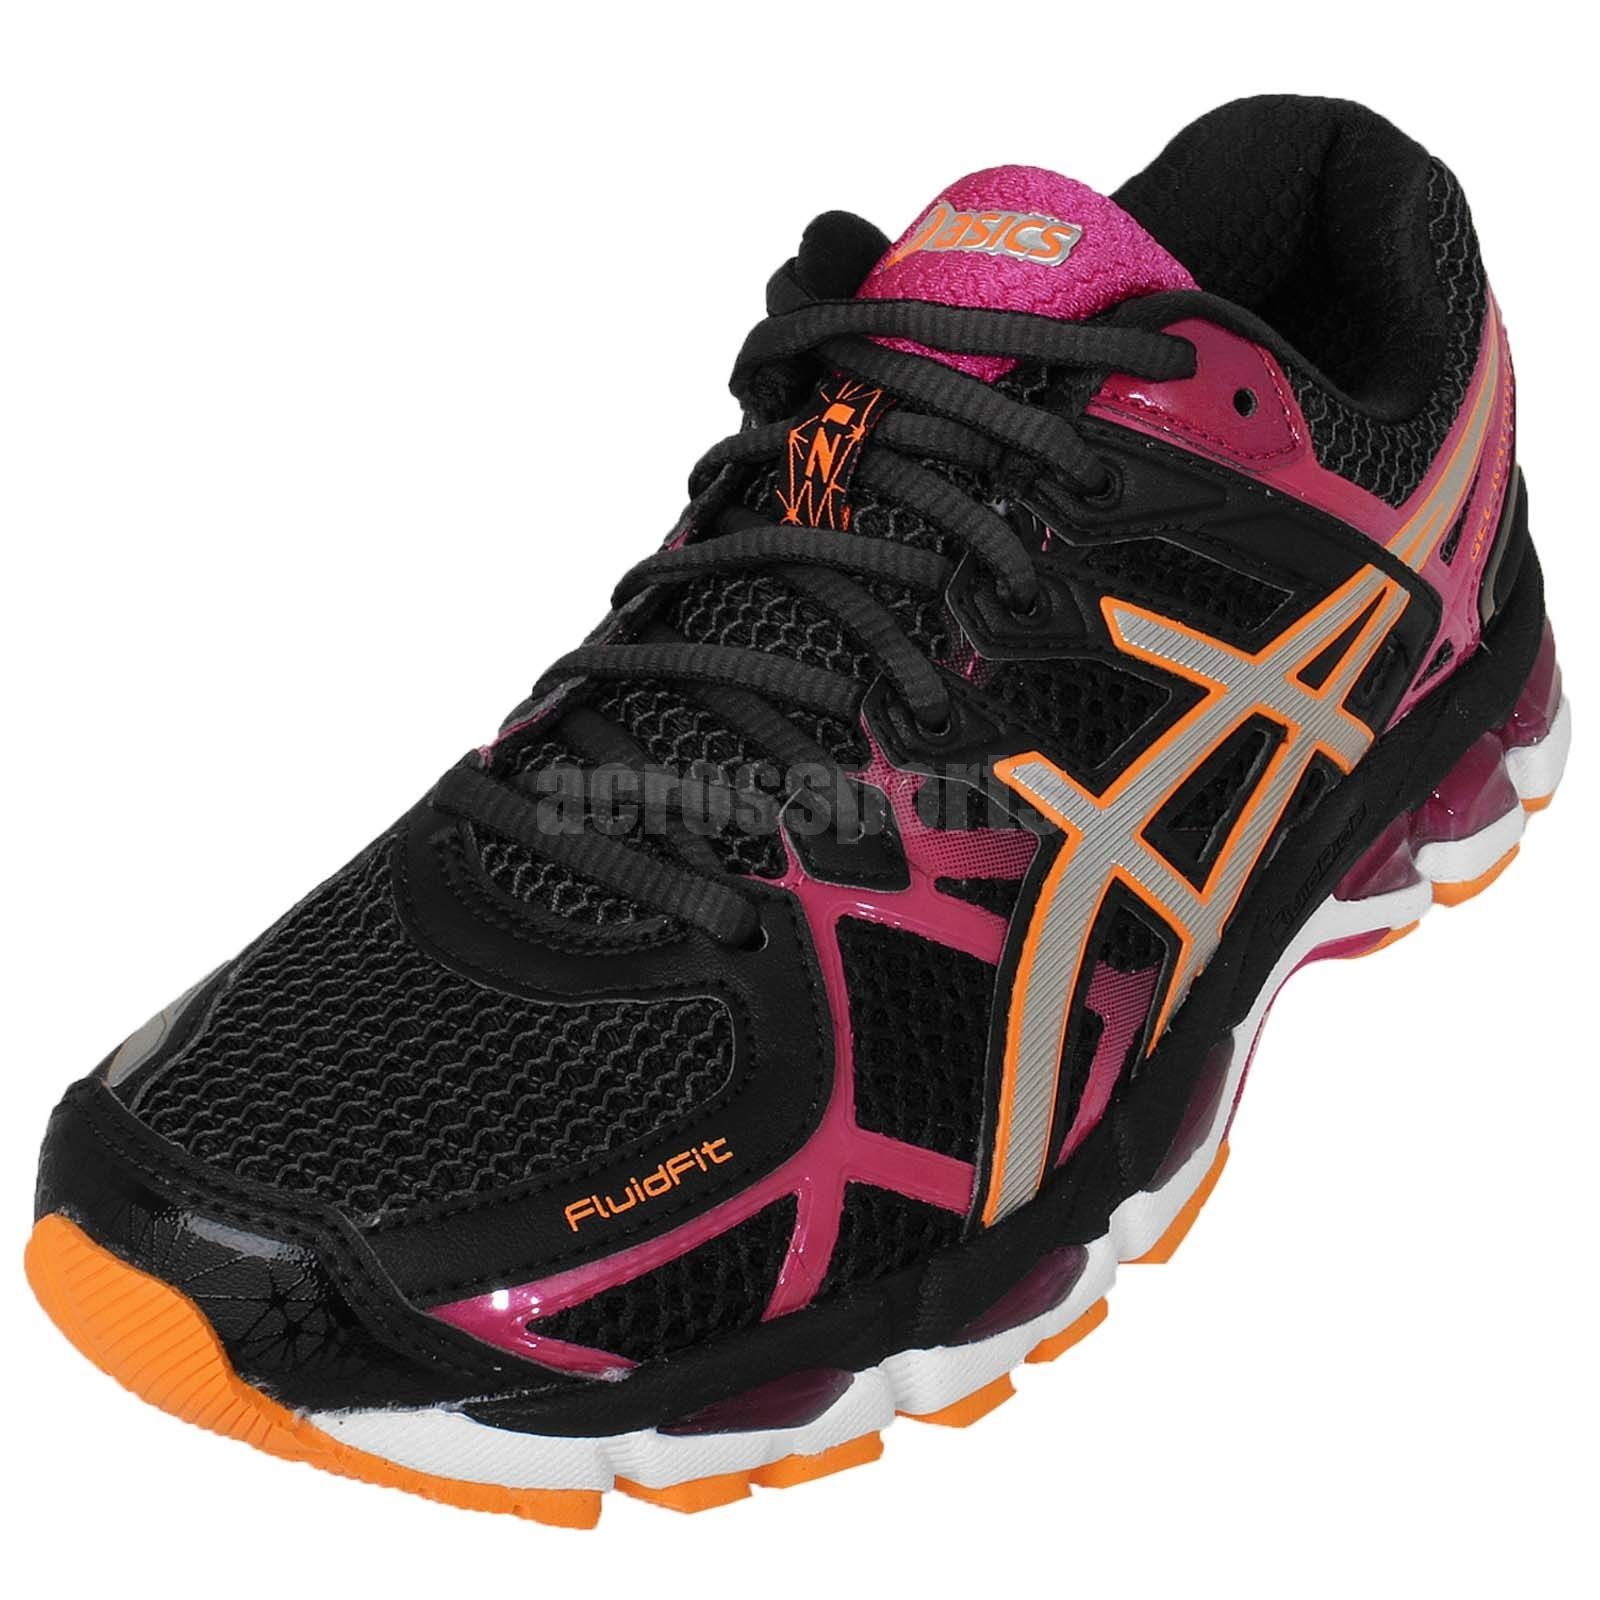 more photos e53a0 29670 Asics Gel Kayano 21 Womens Cushion Running Shoes Runner Sneakers Pick 1    eBay